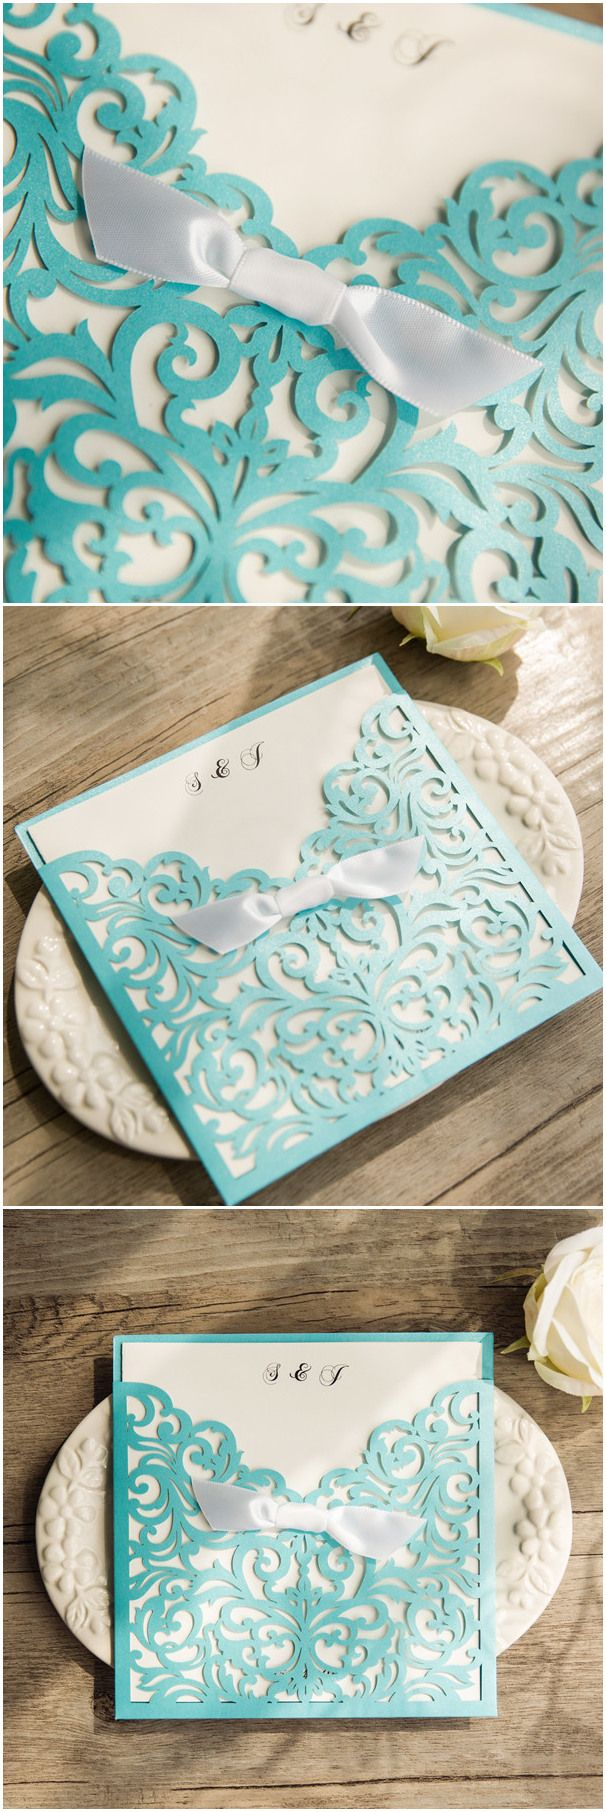 Tiffany blue themed laser cut wedding invitations